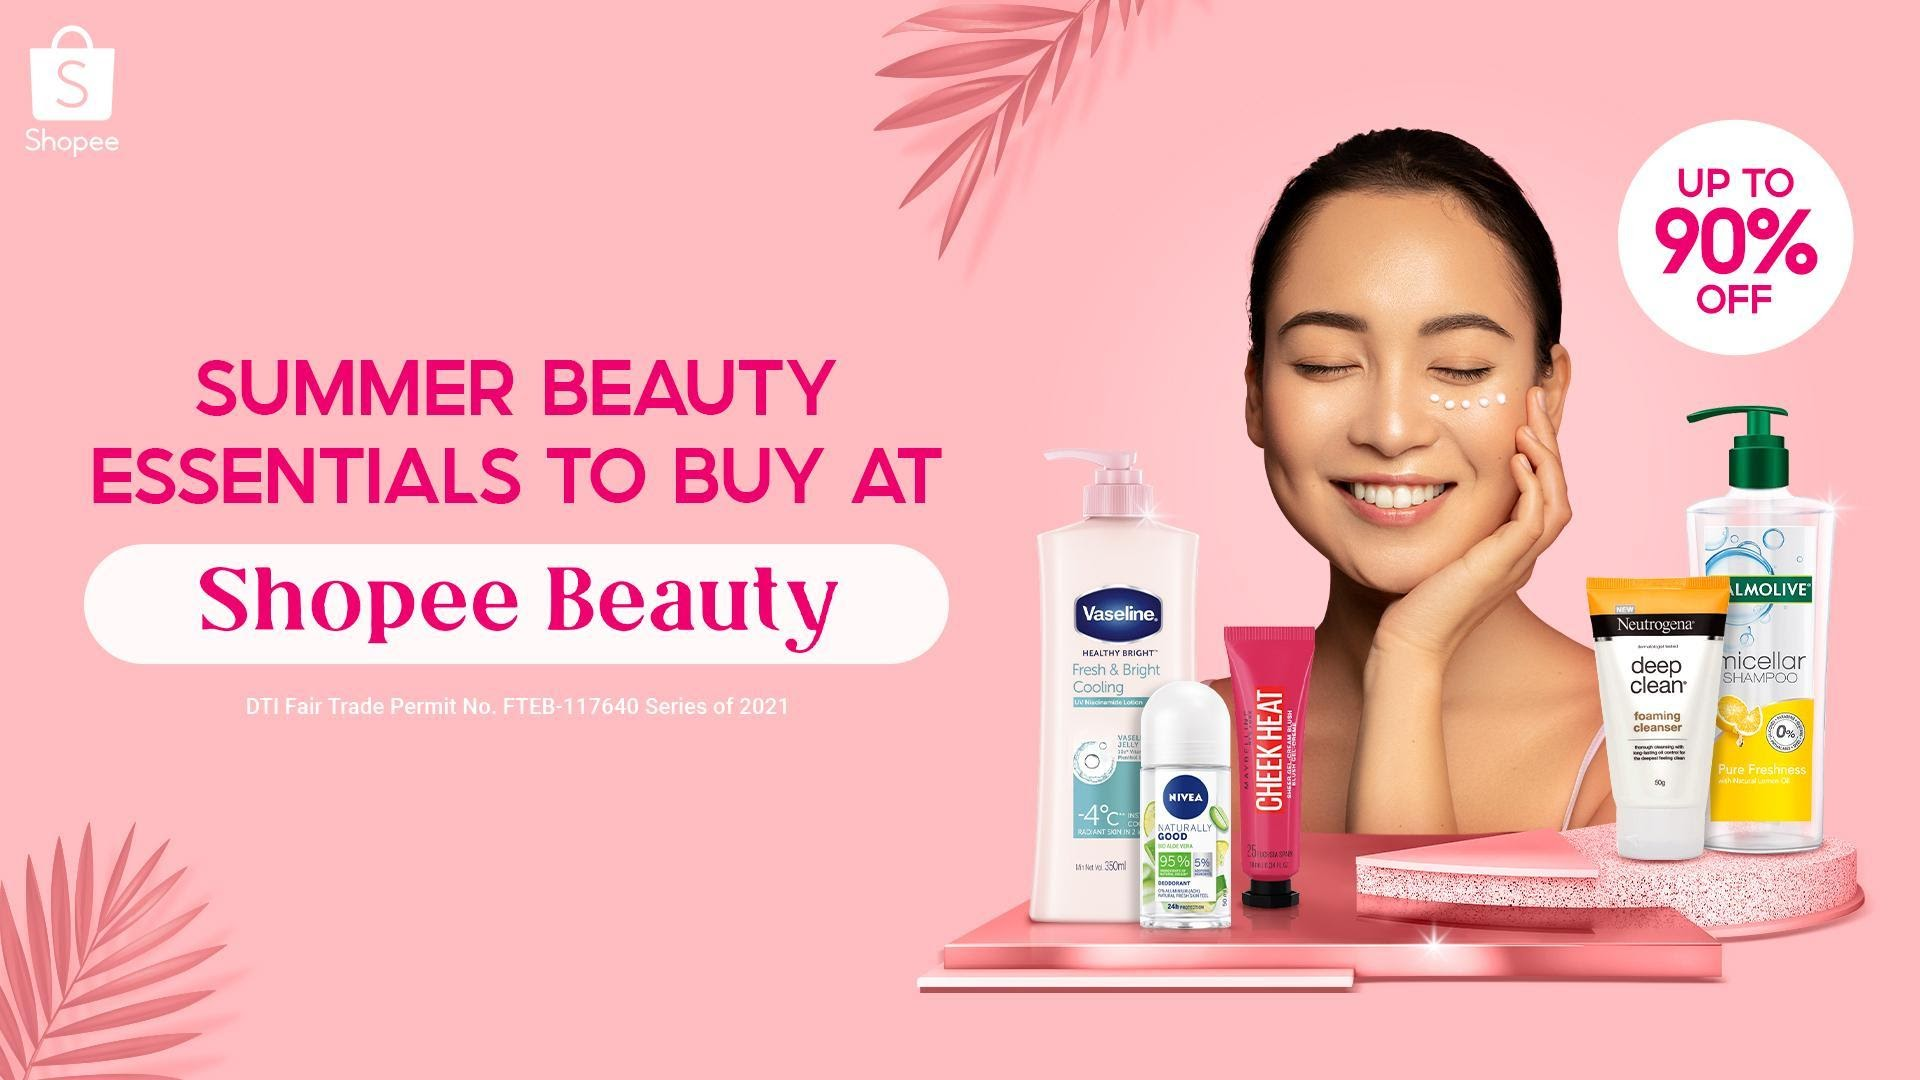 Take up to 90% off on skincare, makeup, and other beauty products at Shopee Beauty starting April 21